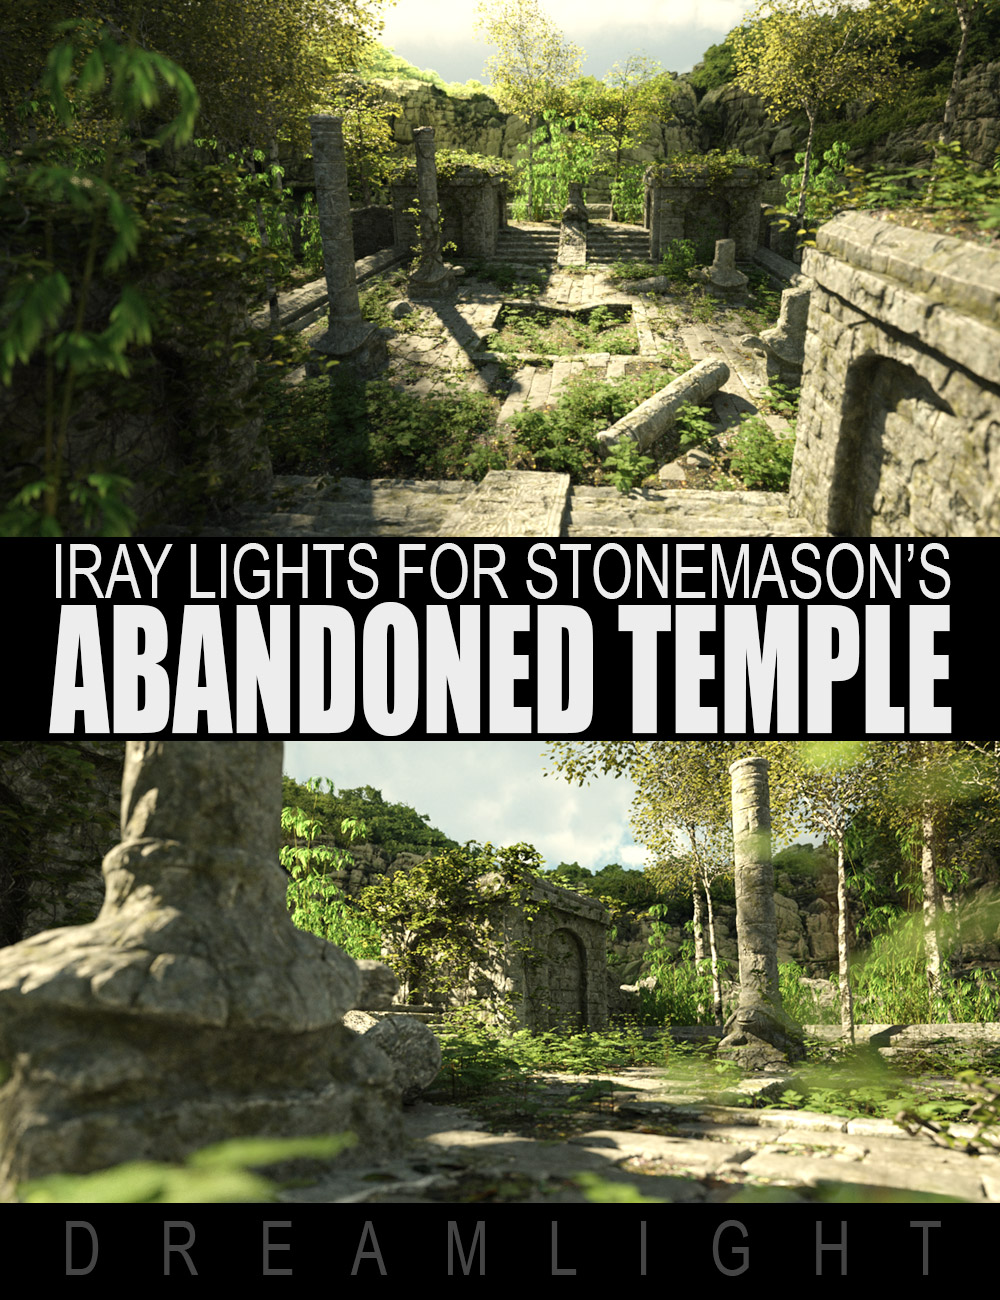 Abandoned Temple Iray Lights by: Dreamlight, 3D Models by Daz 3D